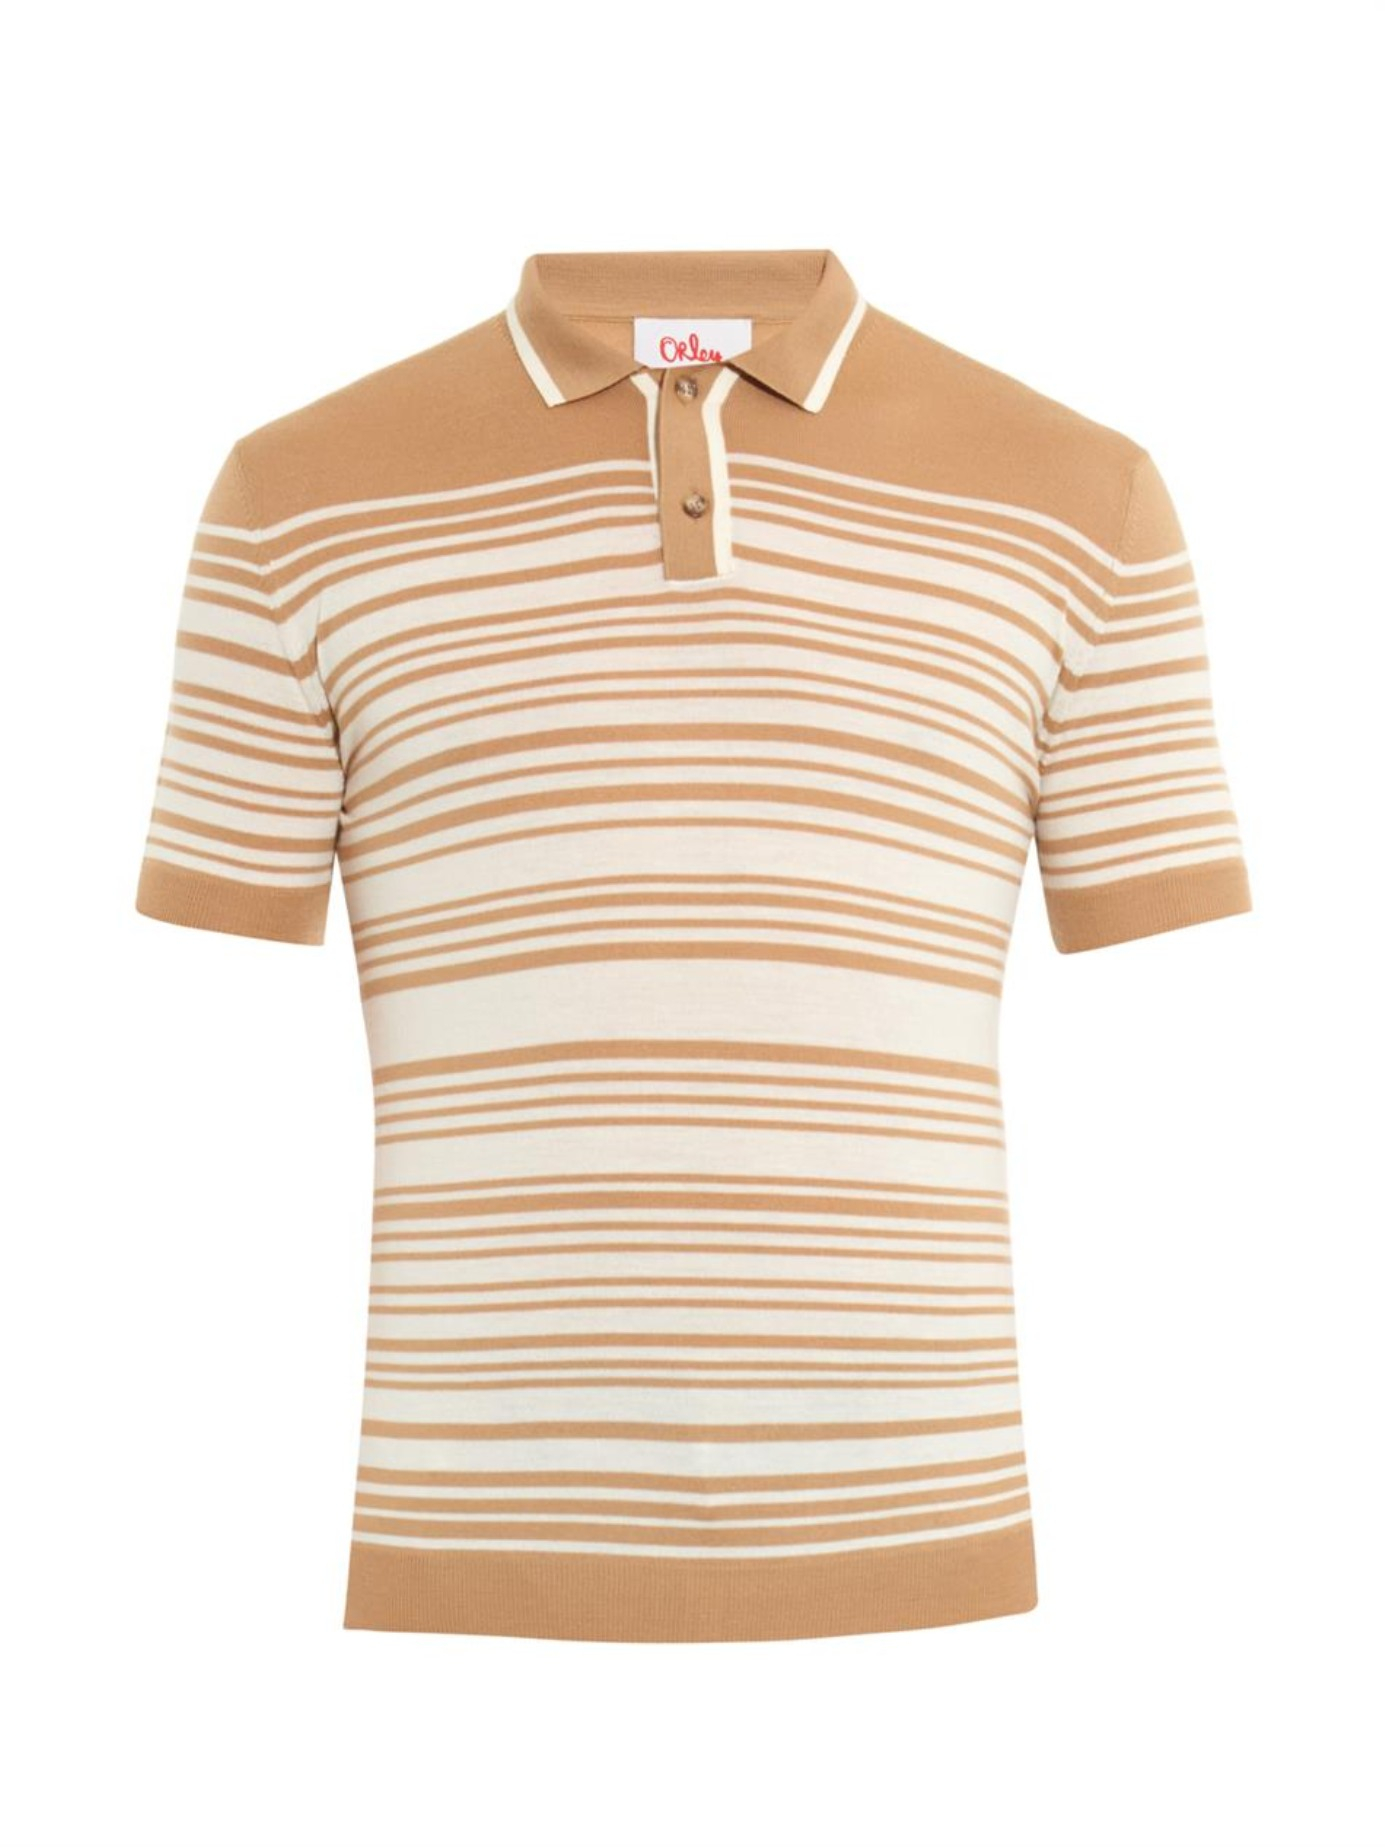 5f940b1991 Vertical Striped Mens Polo Shirts – EDGE Engineering and Consulting ...